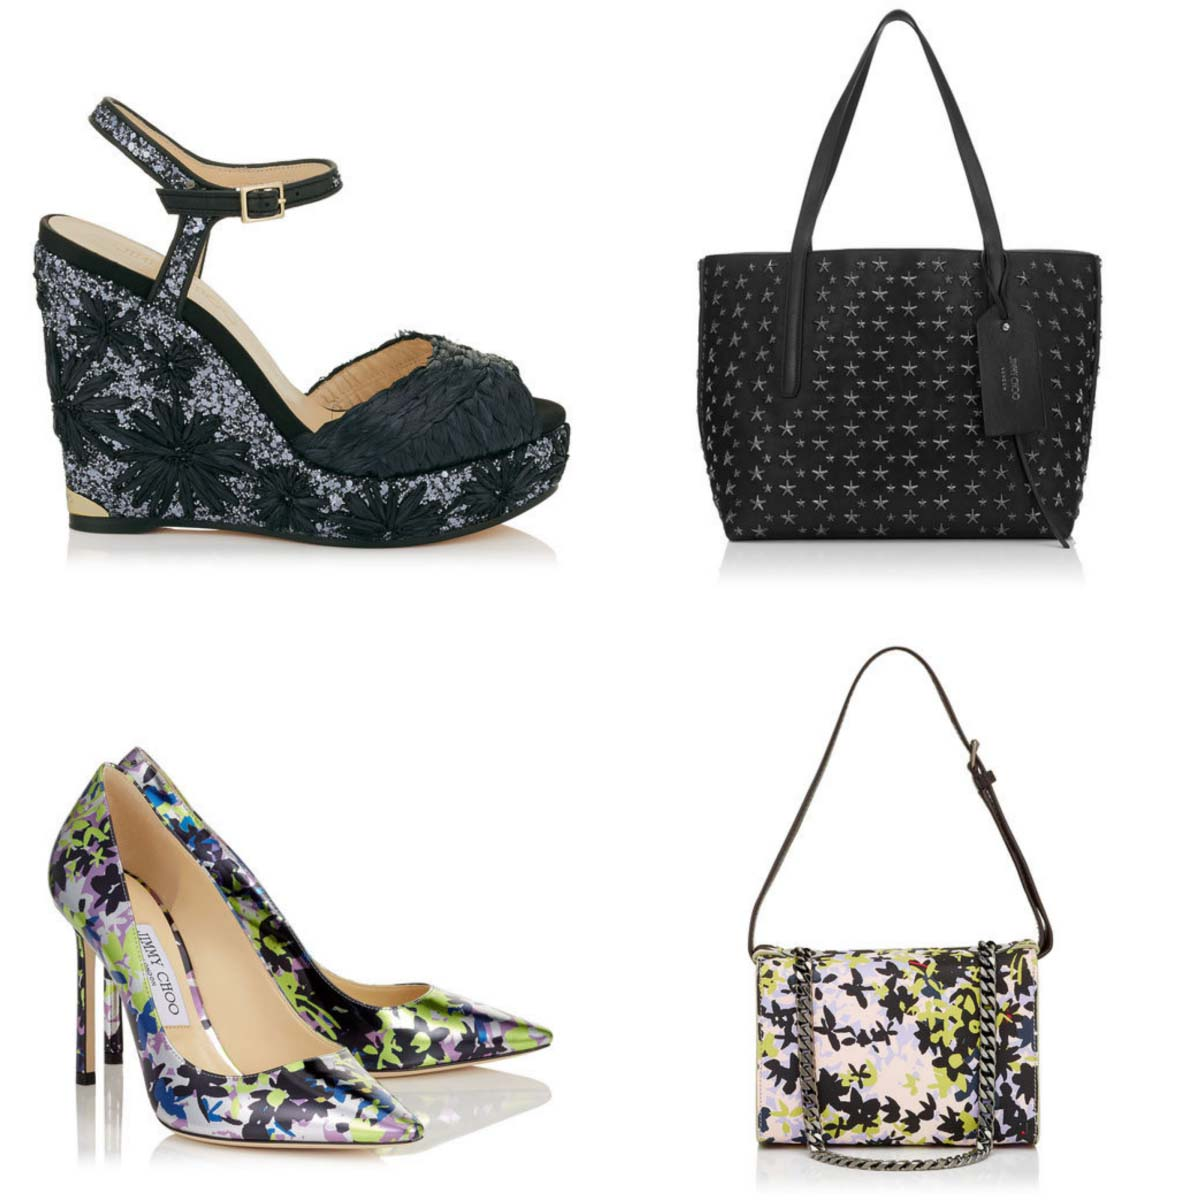 Jimmy Choo Latest Shoes and Handbags Collection 2017-2018 (13)